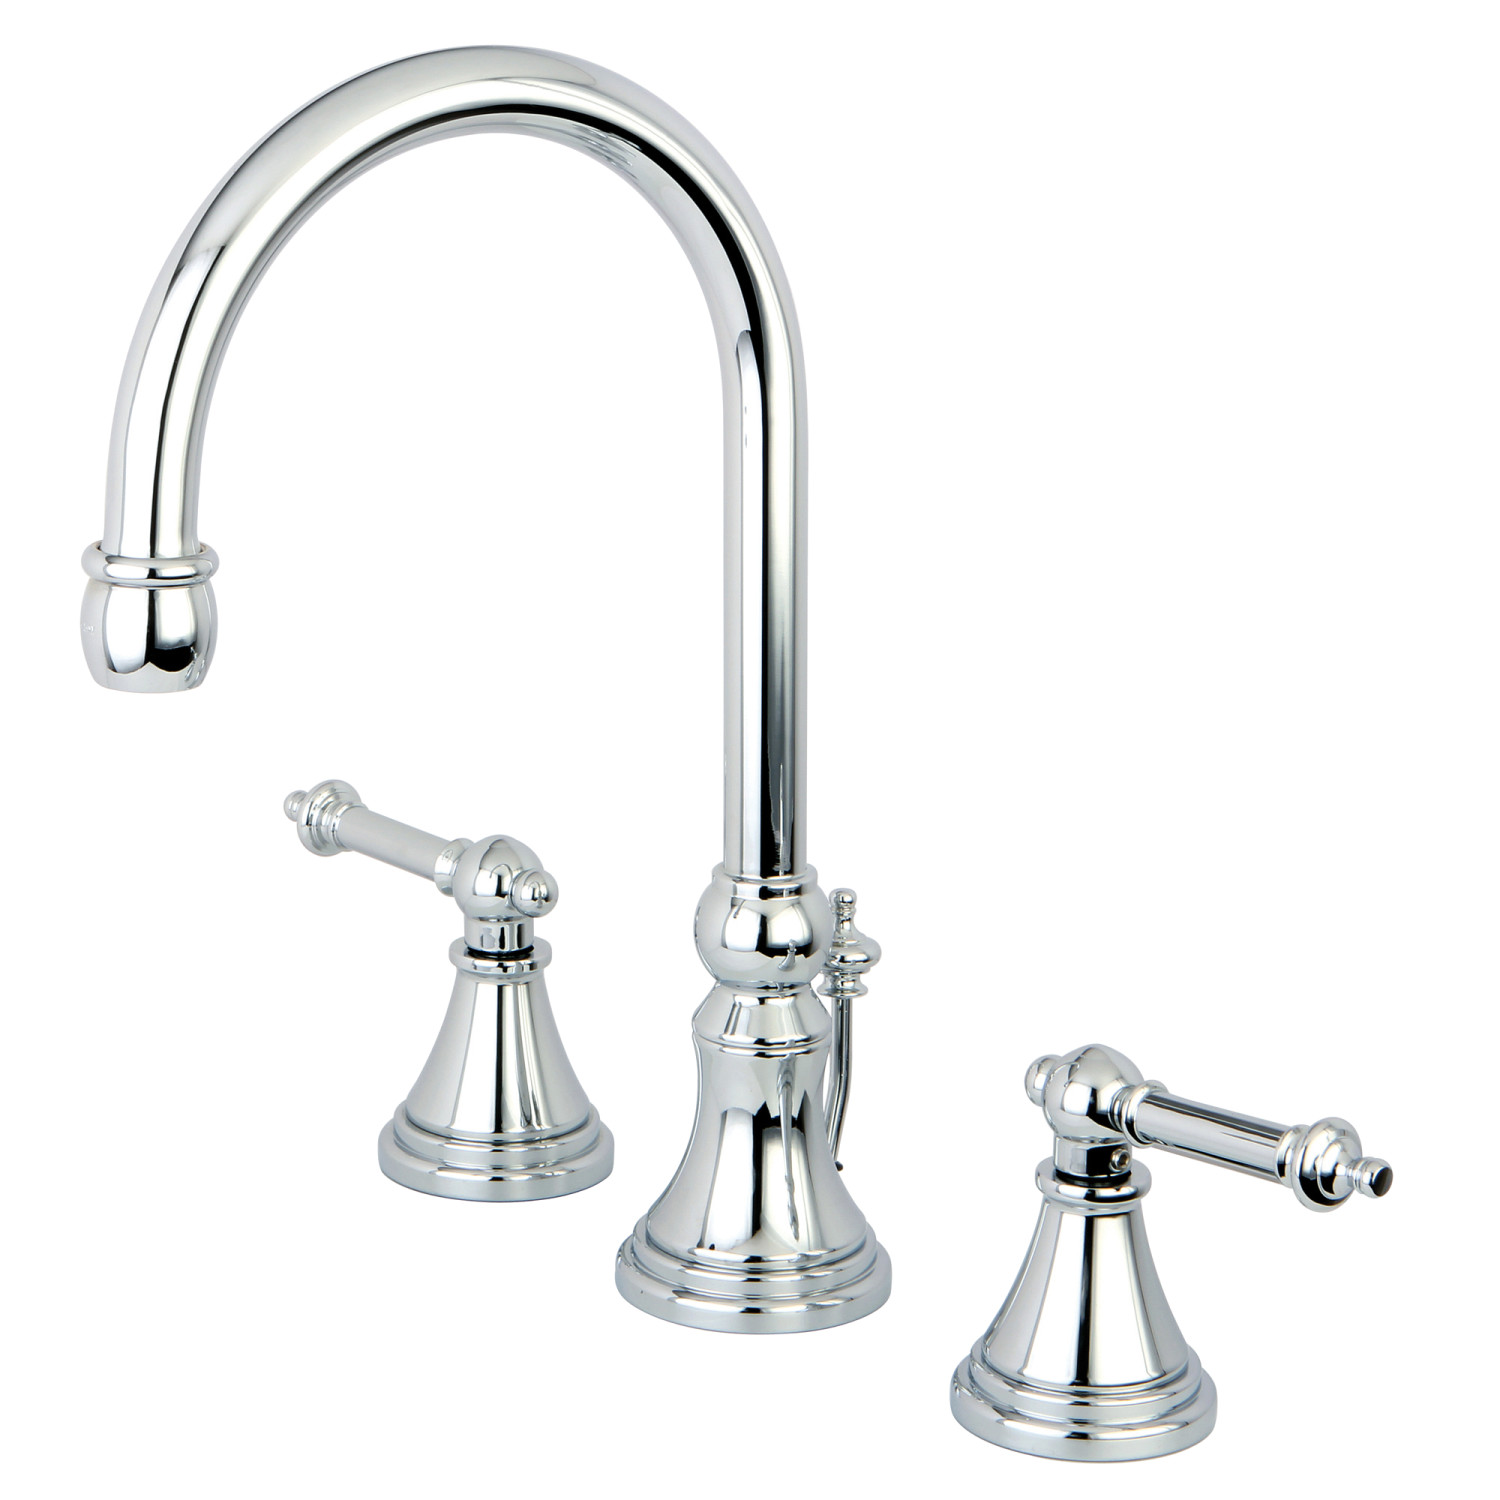 Modern Two-Handle 3-Hole Deck Mount Widespread Bathroom Faucet with Brass Pop-Up in Polished Chrome